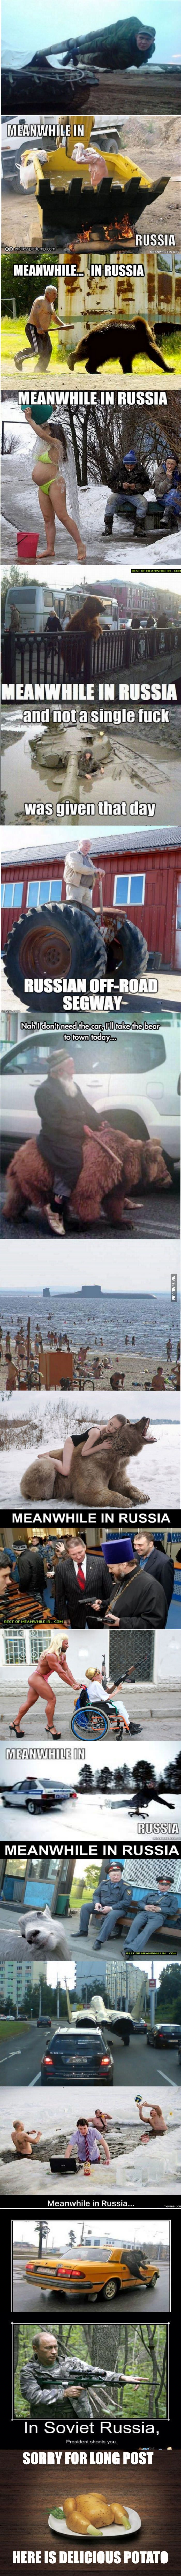 Best 25 driving in russia ideas on pinterest bye in russian meanwhile in russia and funny turkey memes